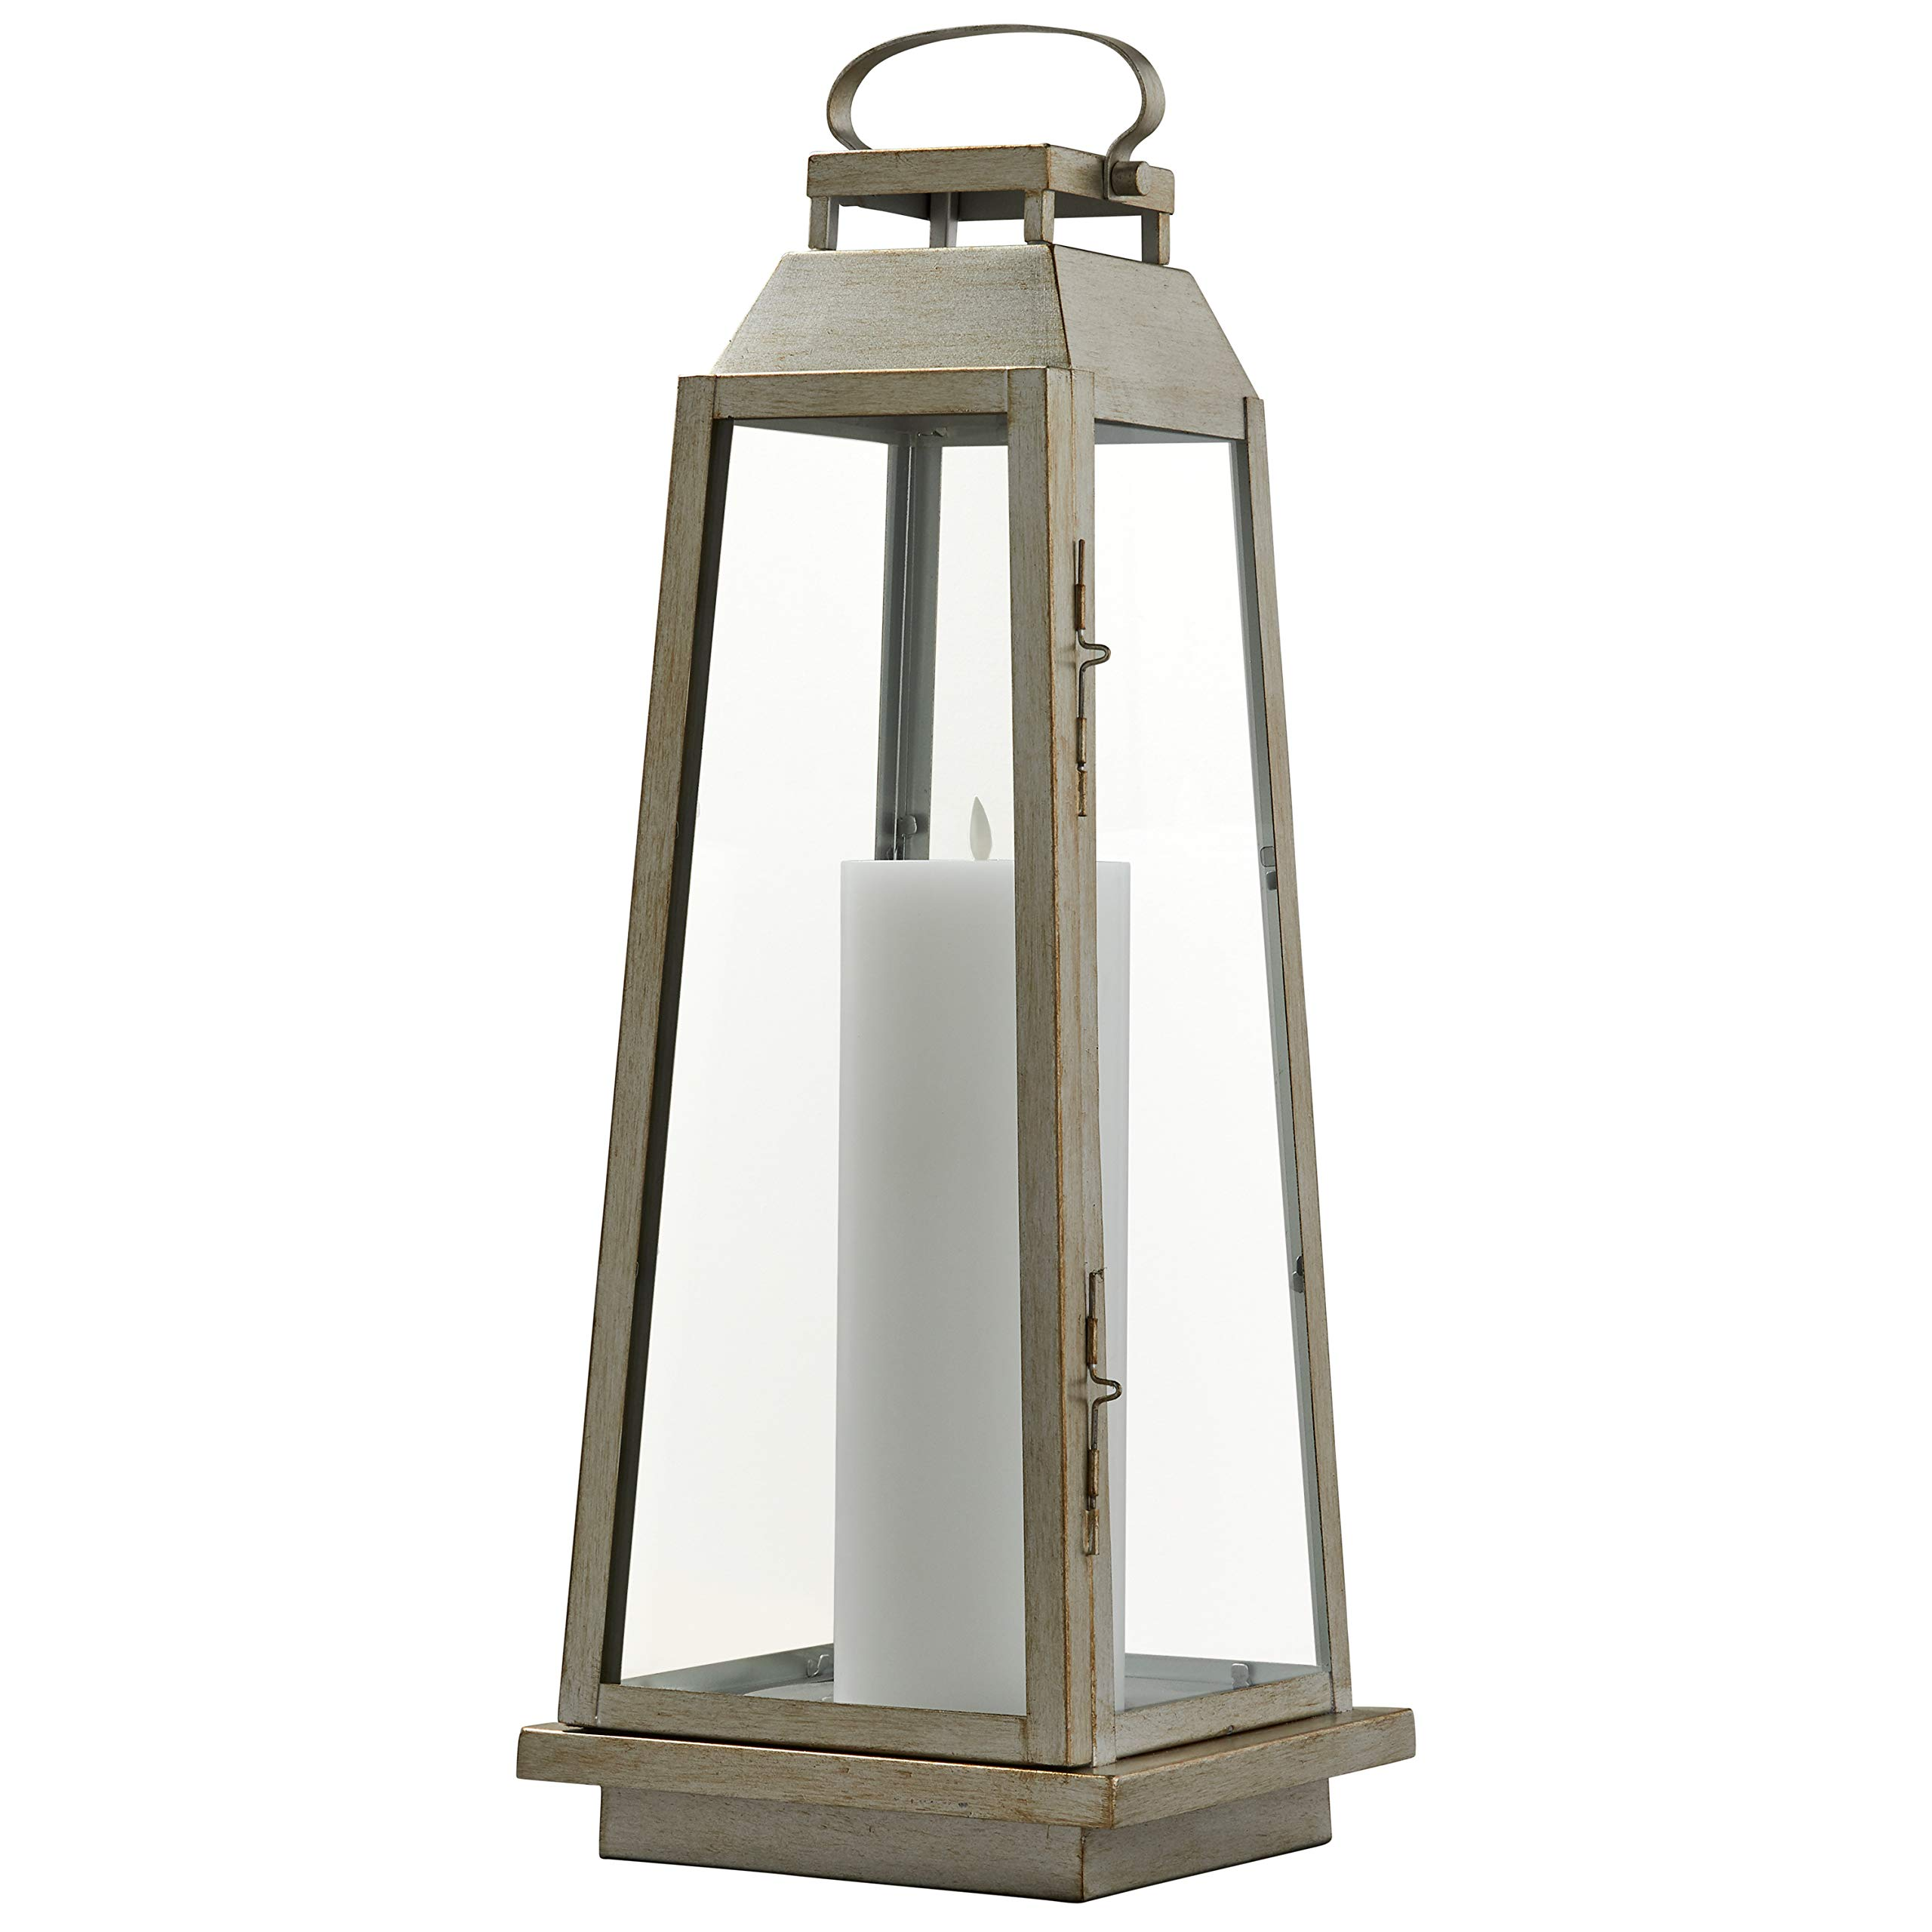 Stone & Beam Modern Traditional Decorative Metal and Glass Lantern with Candle, 25''H, Champagne Silver, For Indoor Outdoor Use